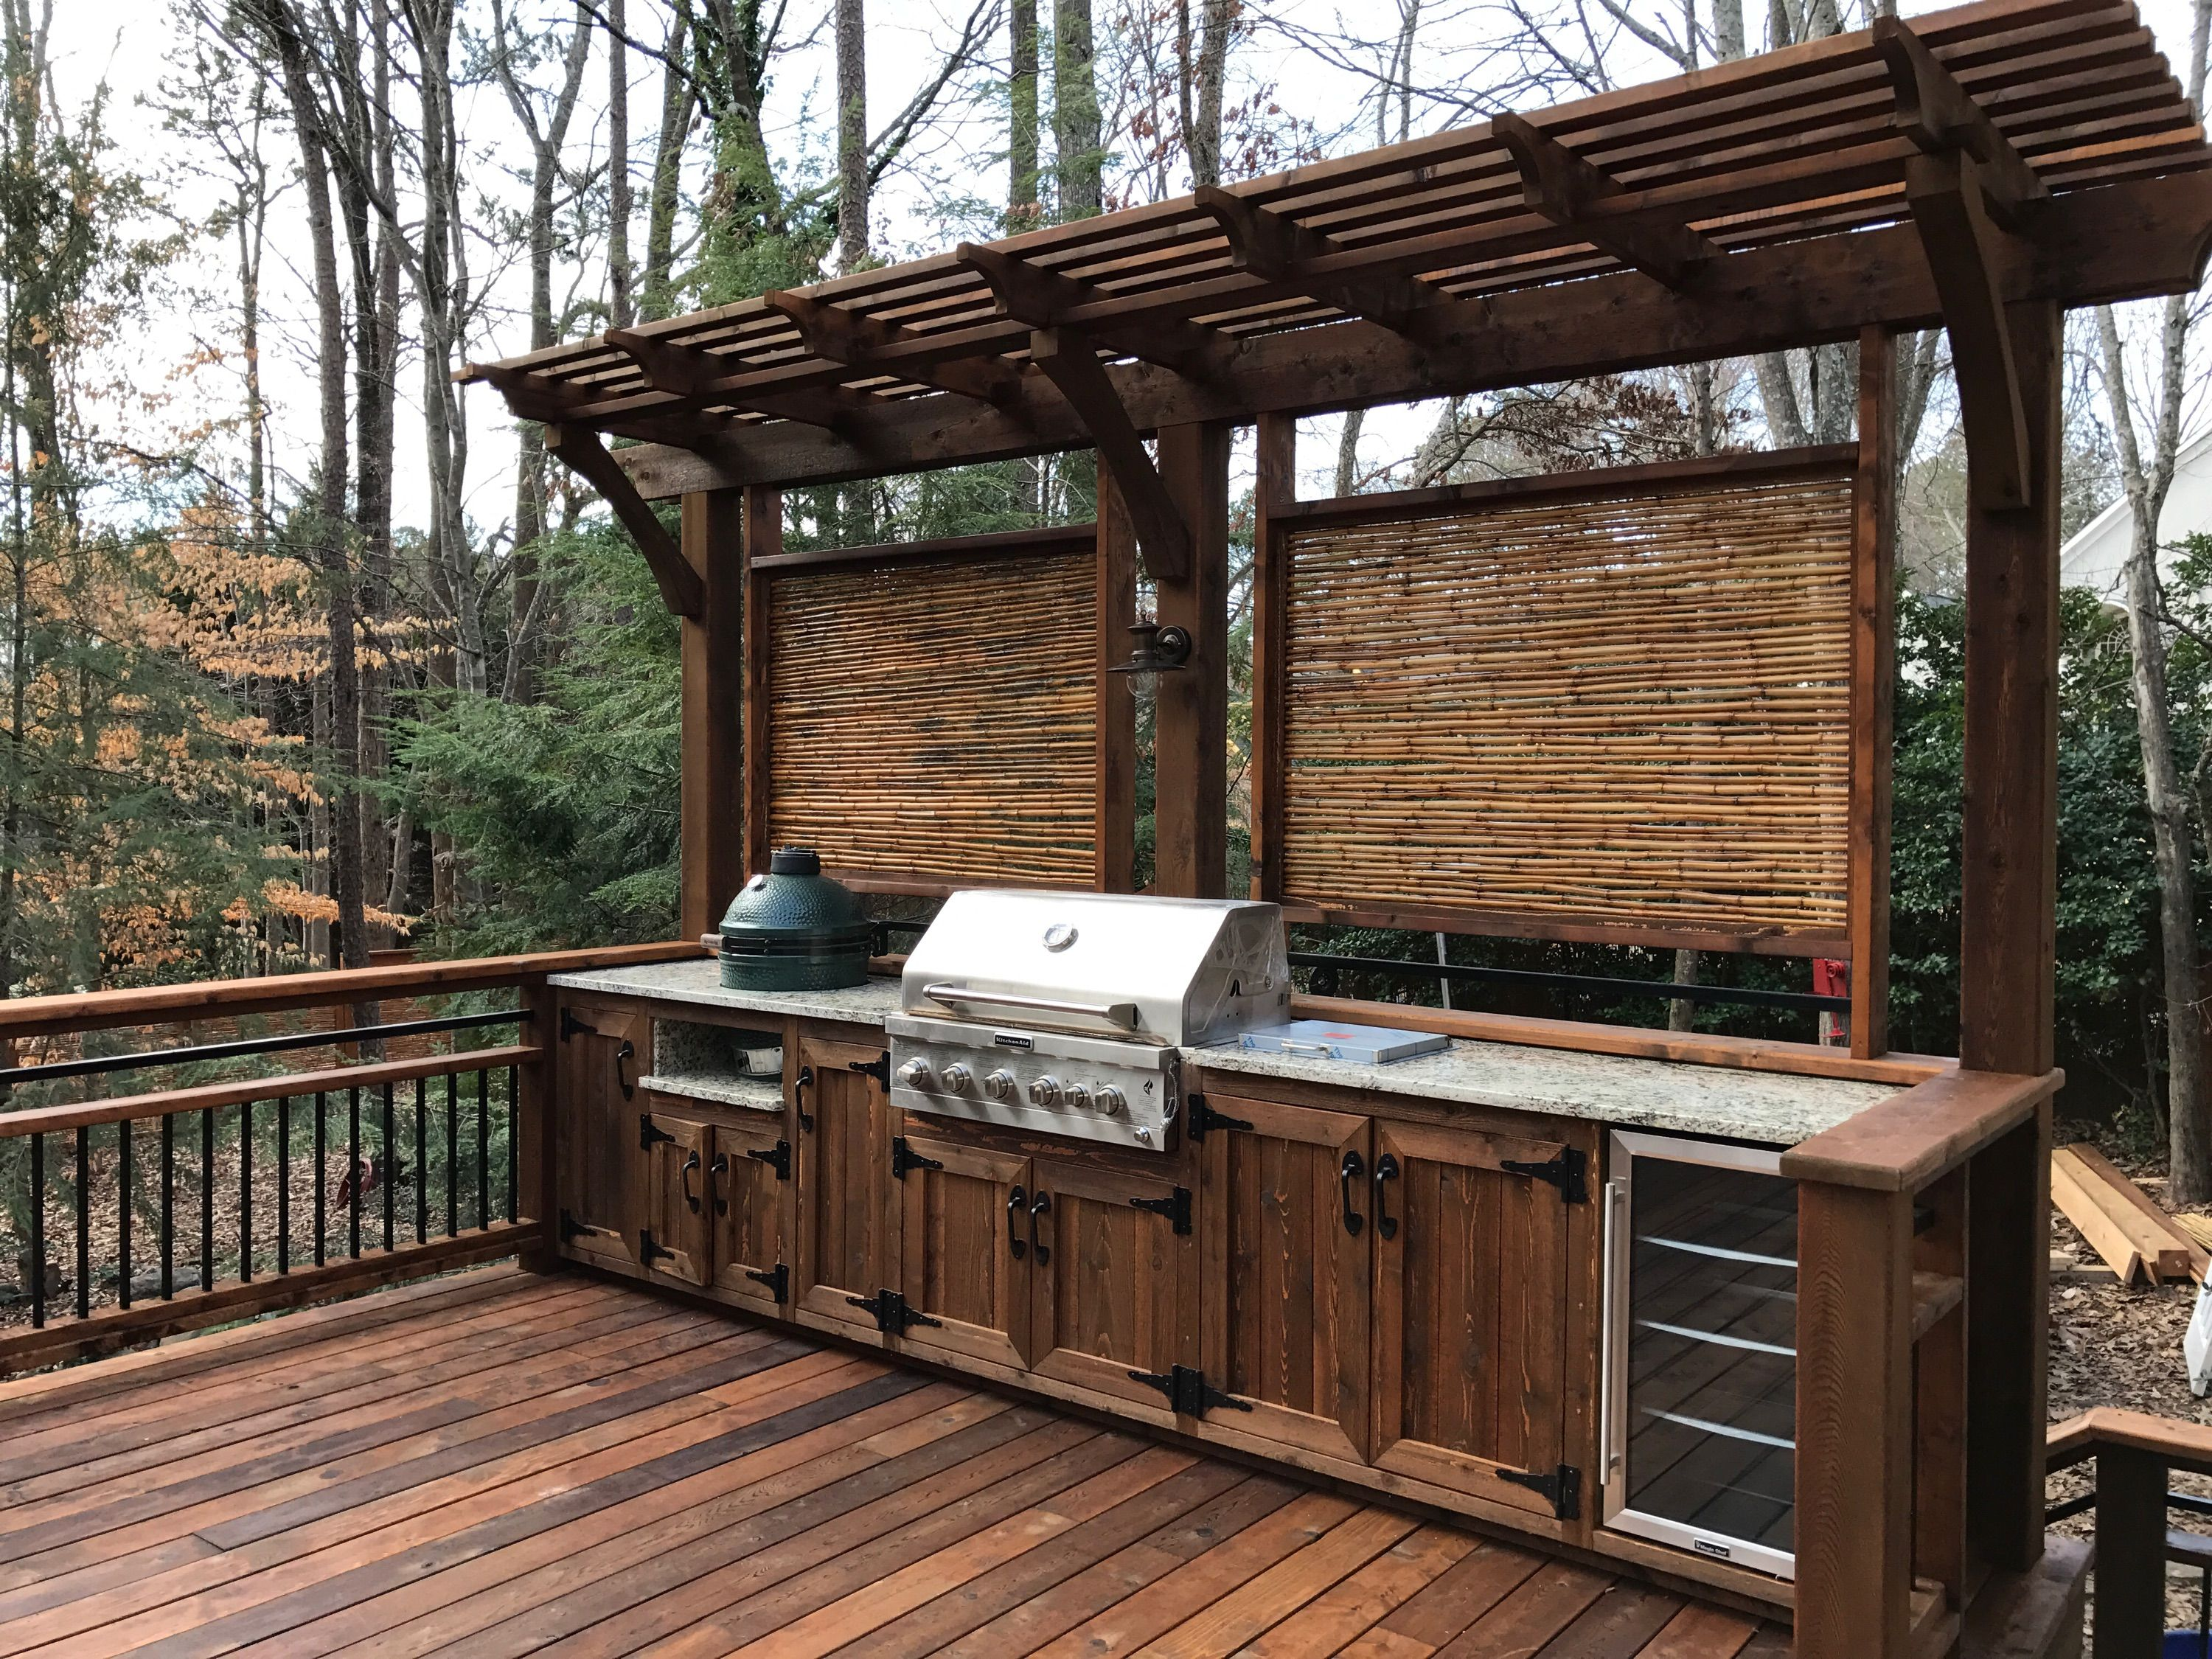 Dreamy Outdoor East Cobb Kitchen | Kitchens and Curb appeal